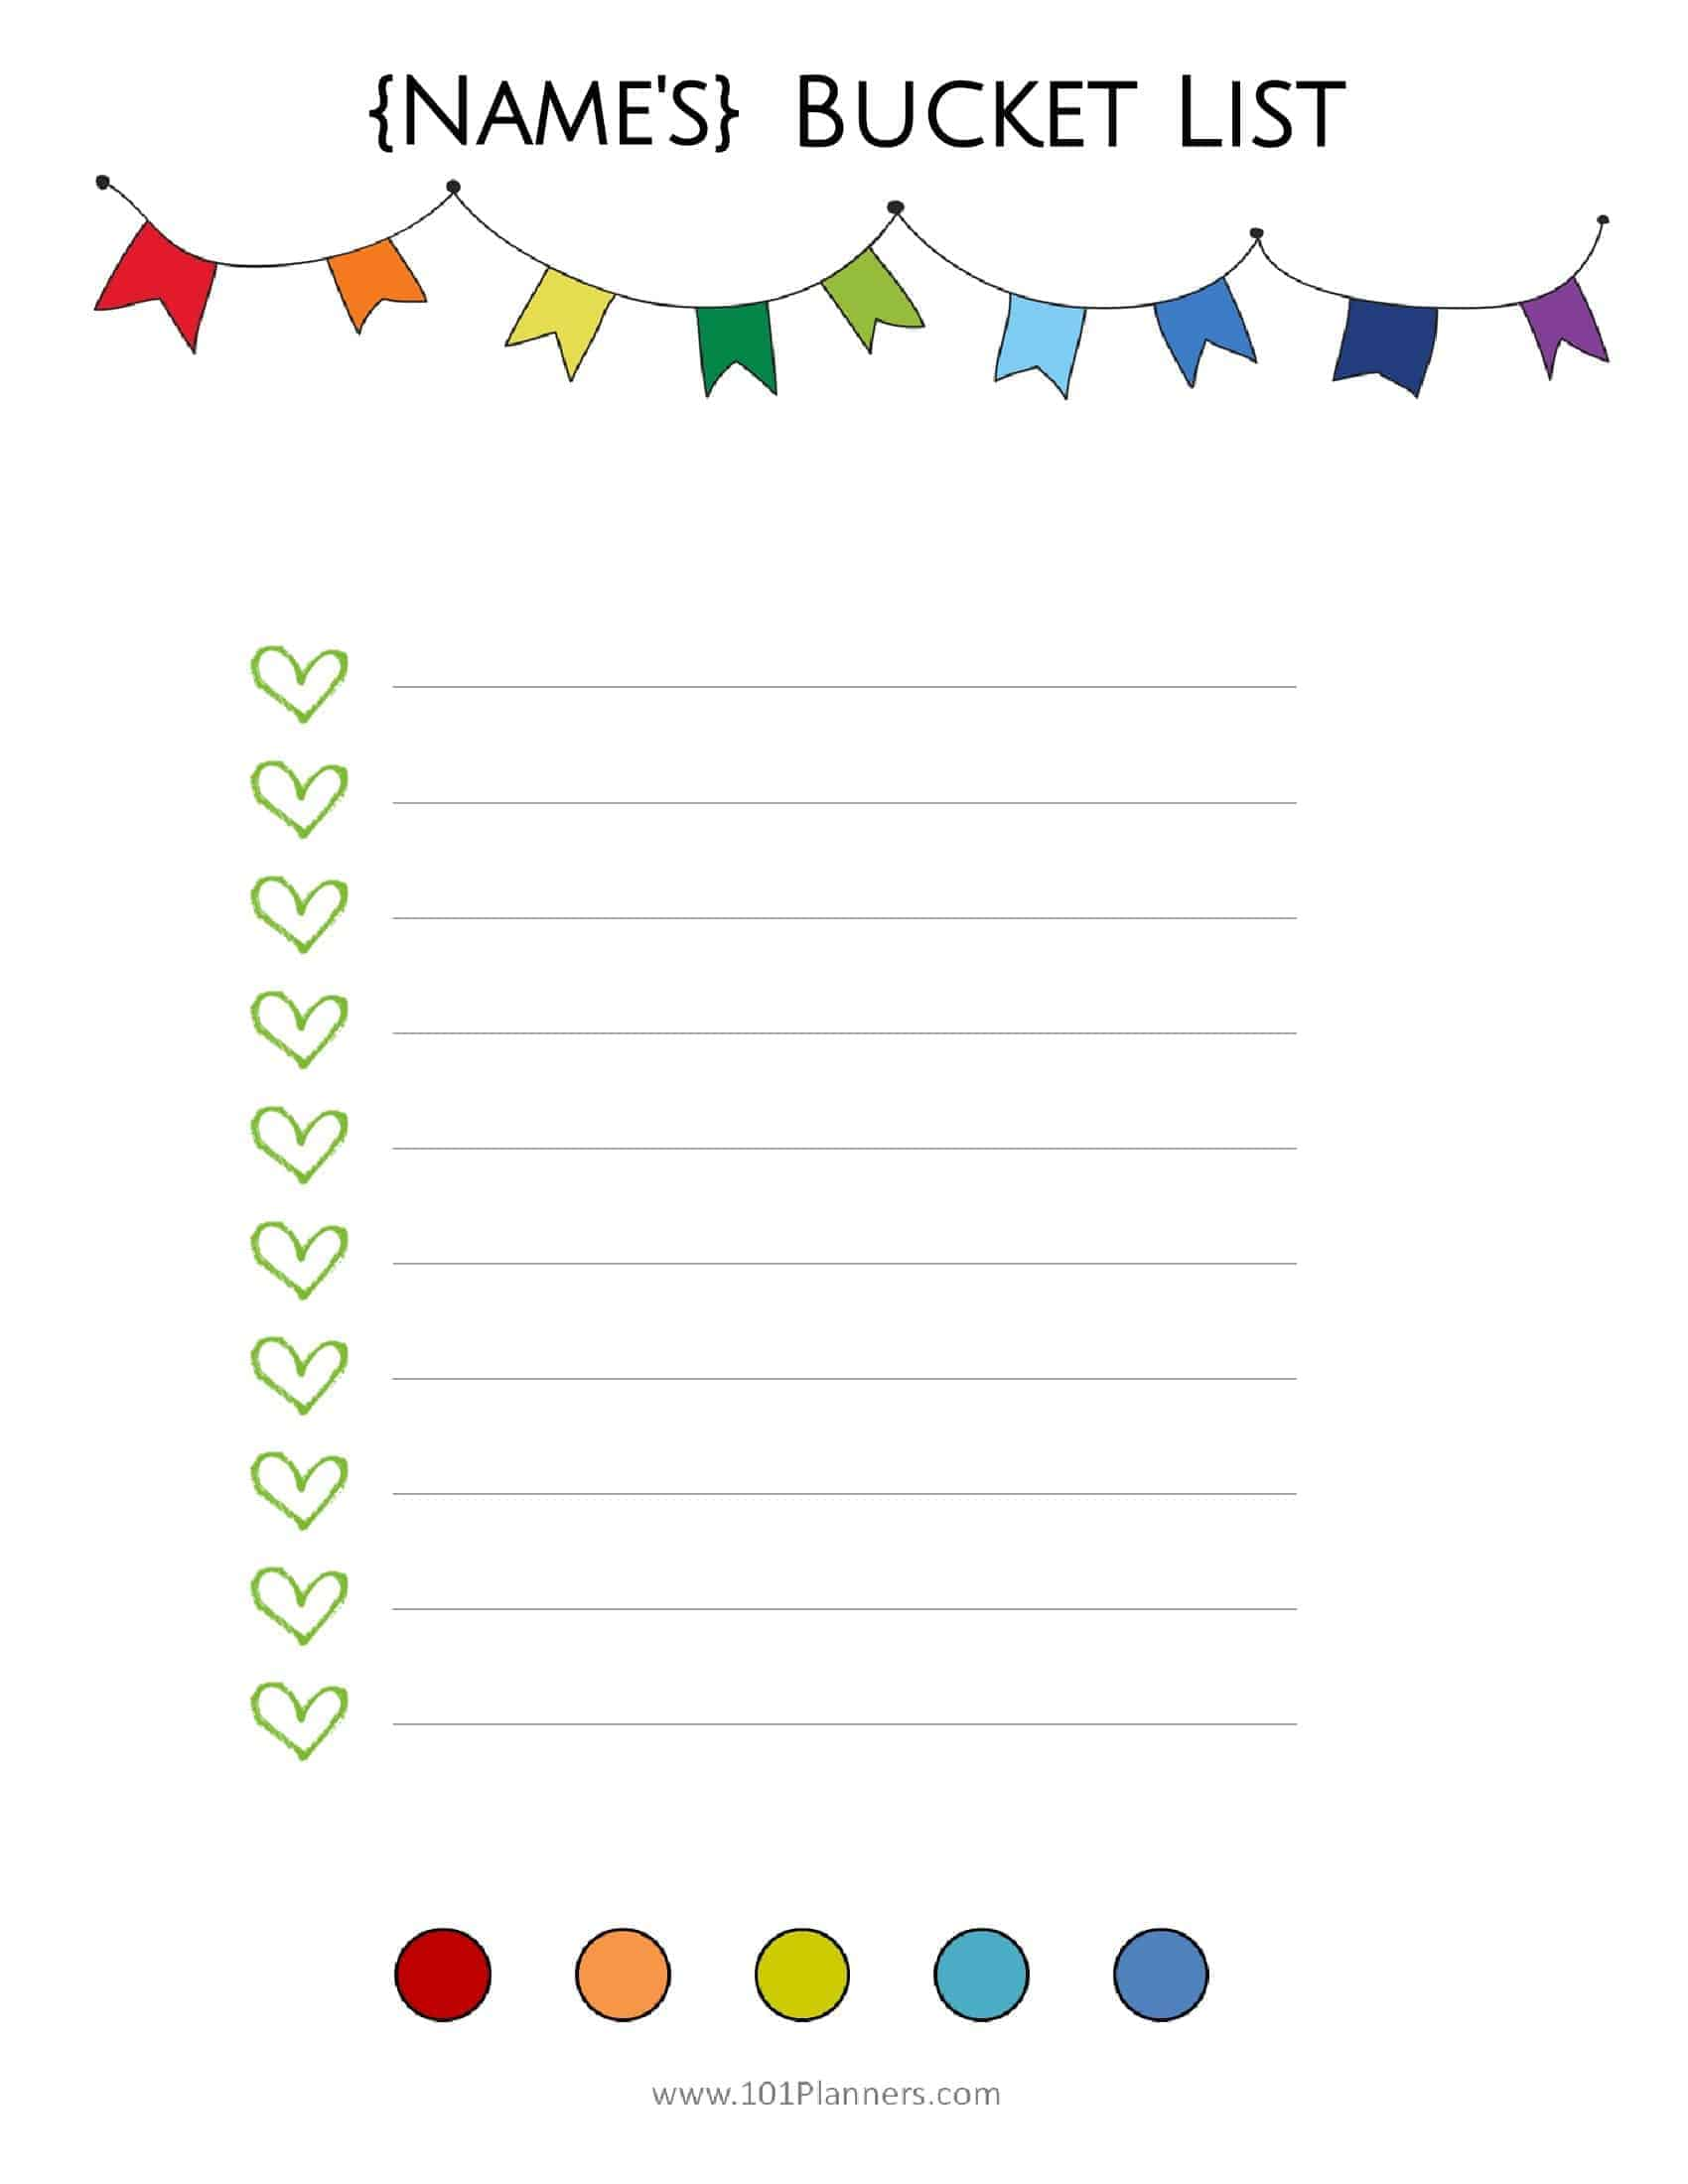 graphic about Bucket List Printable Template named Absolutely free Bucket Record Printable Personalize On the net Print at Household